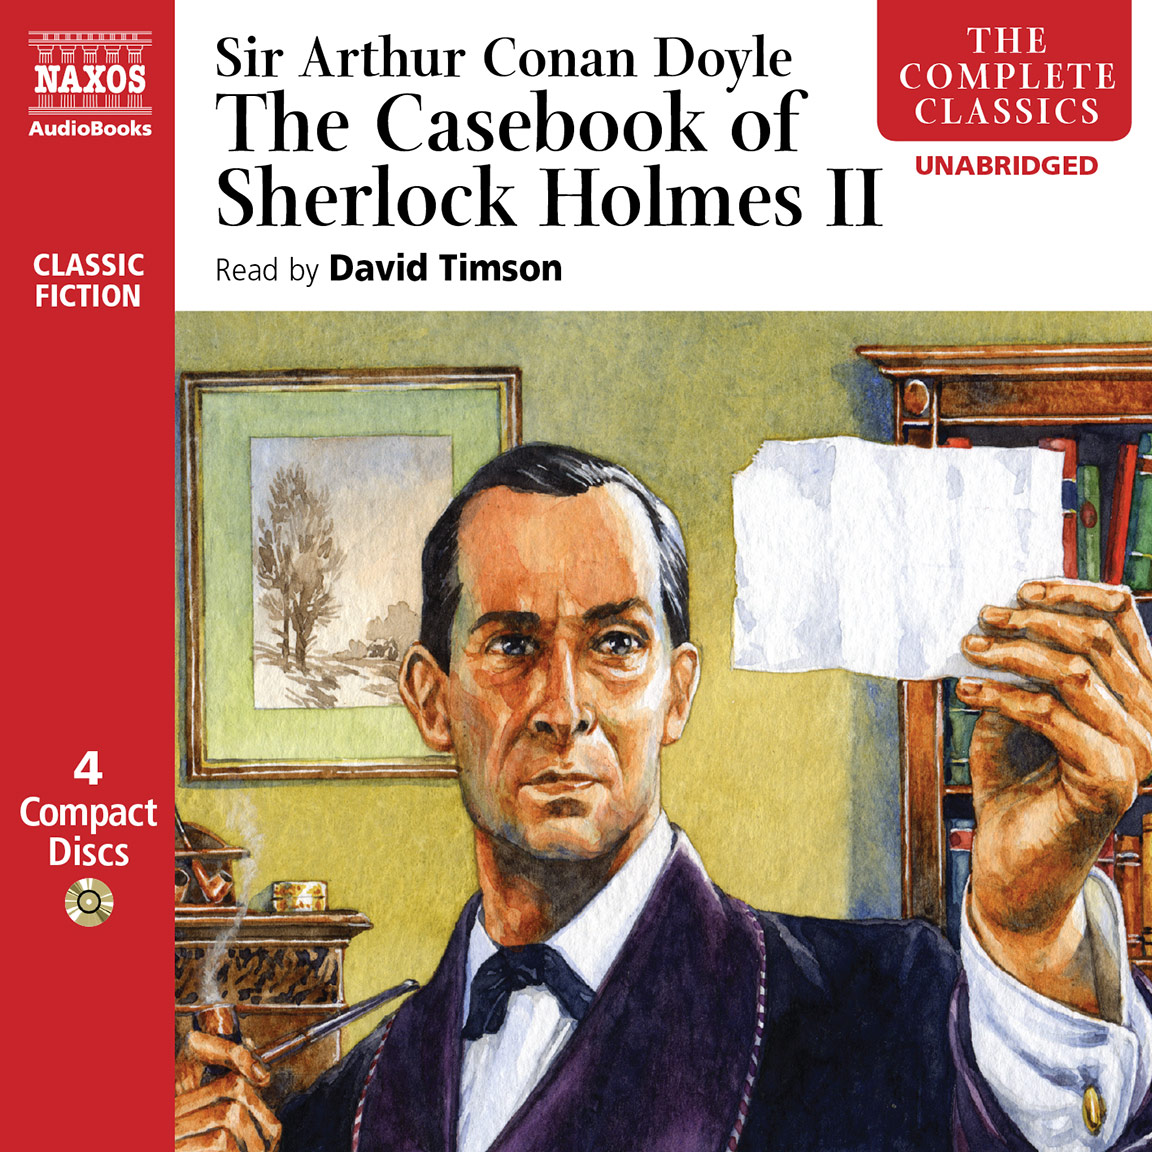 sir arthur conan doyle essay The doctor and the detective: a biography of sir arthur conan doyle - kindle edition by martin booth download it once and read.